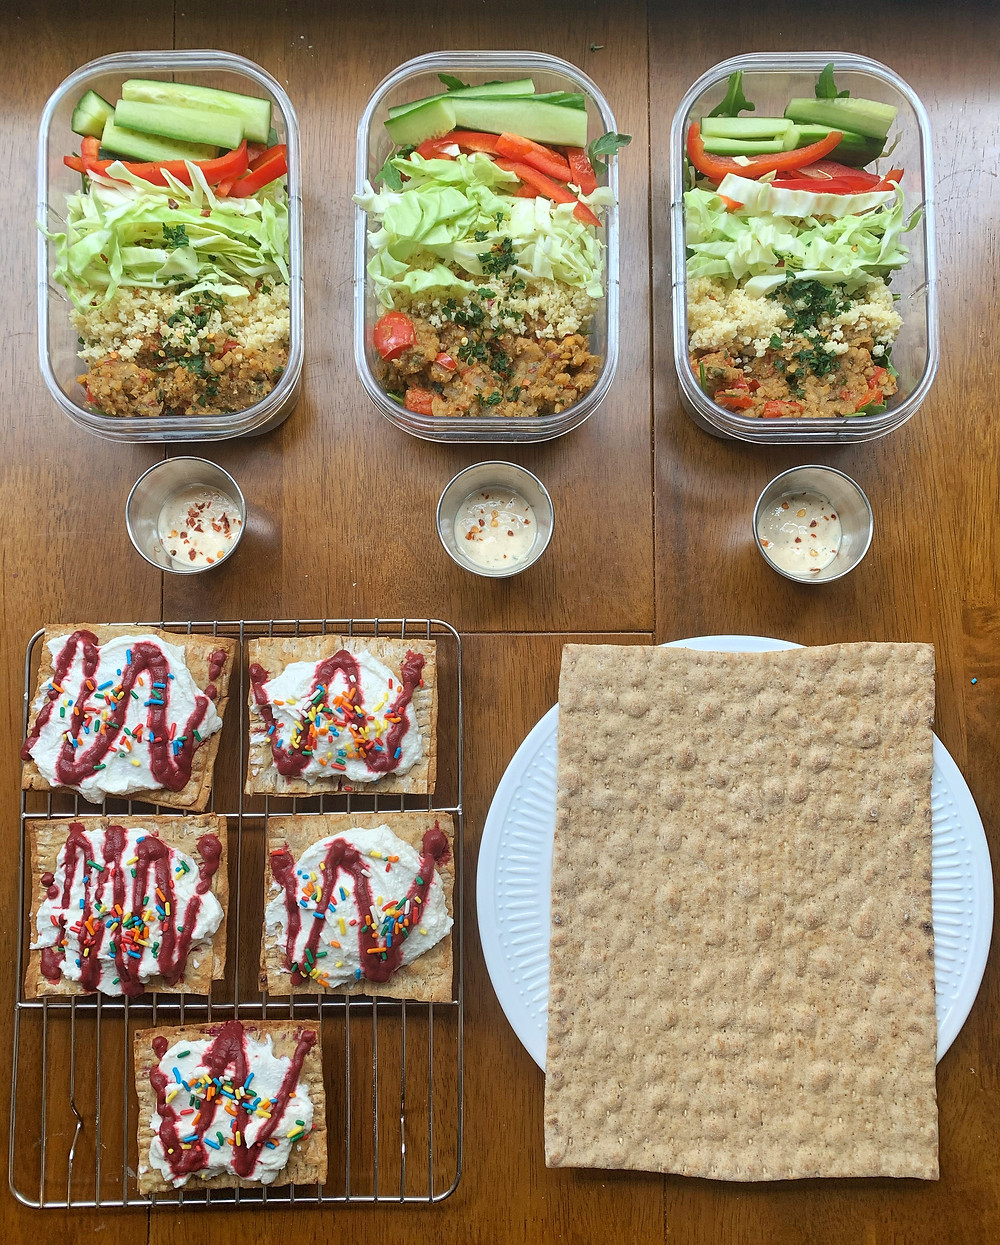 Copy Cat Trader Joe's Spicy Lentil Wrap